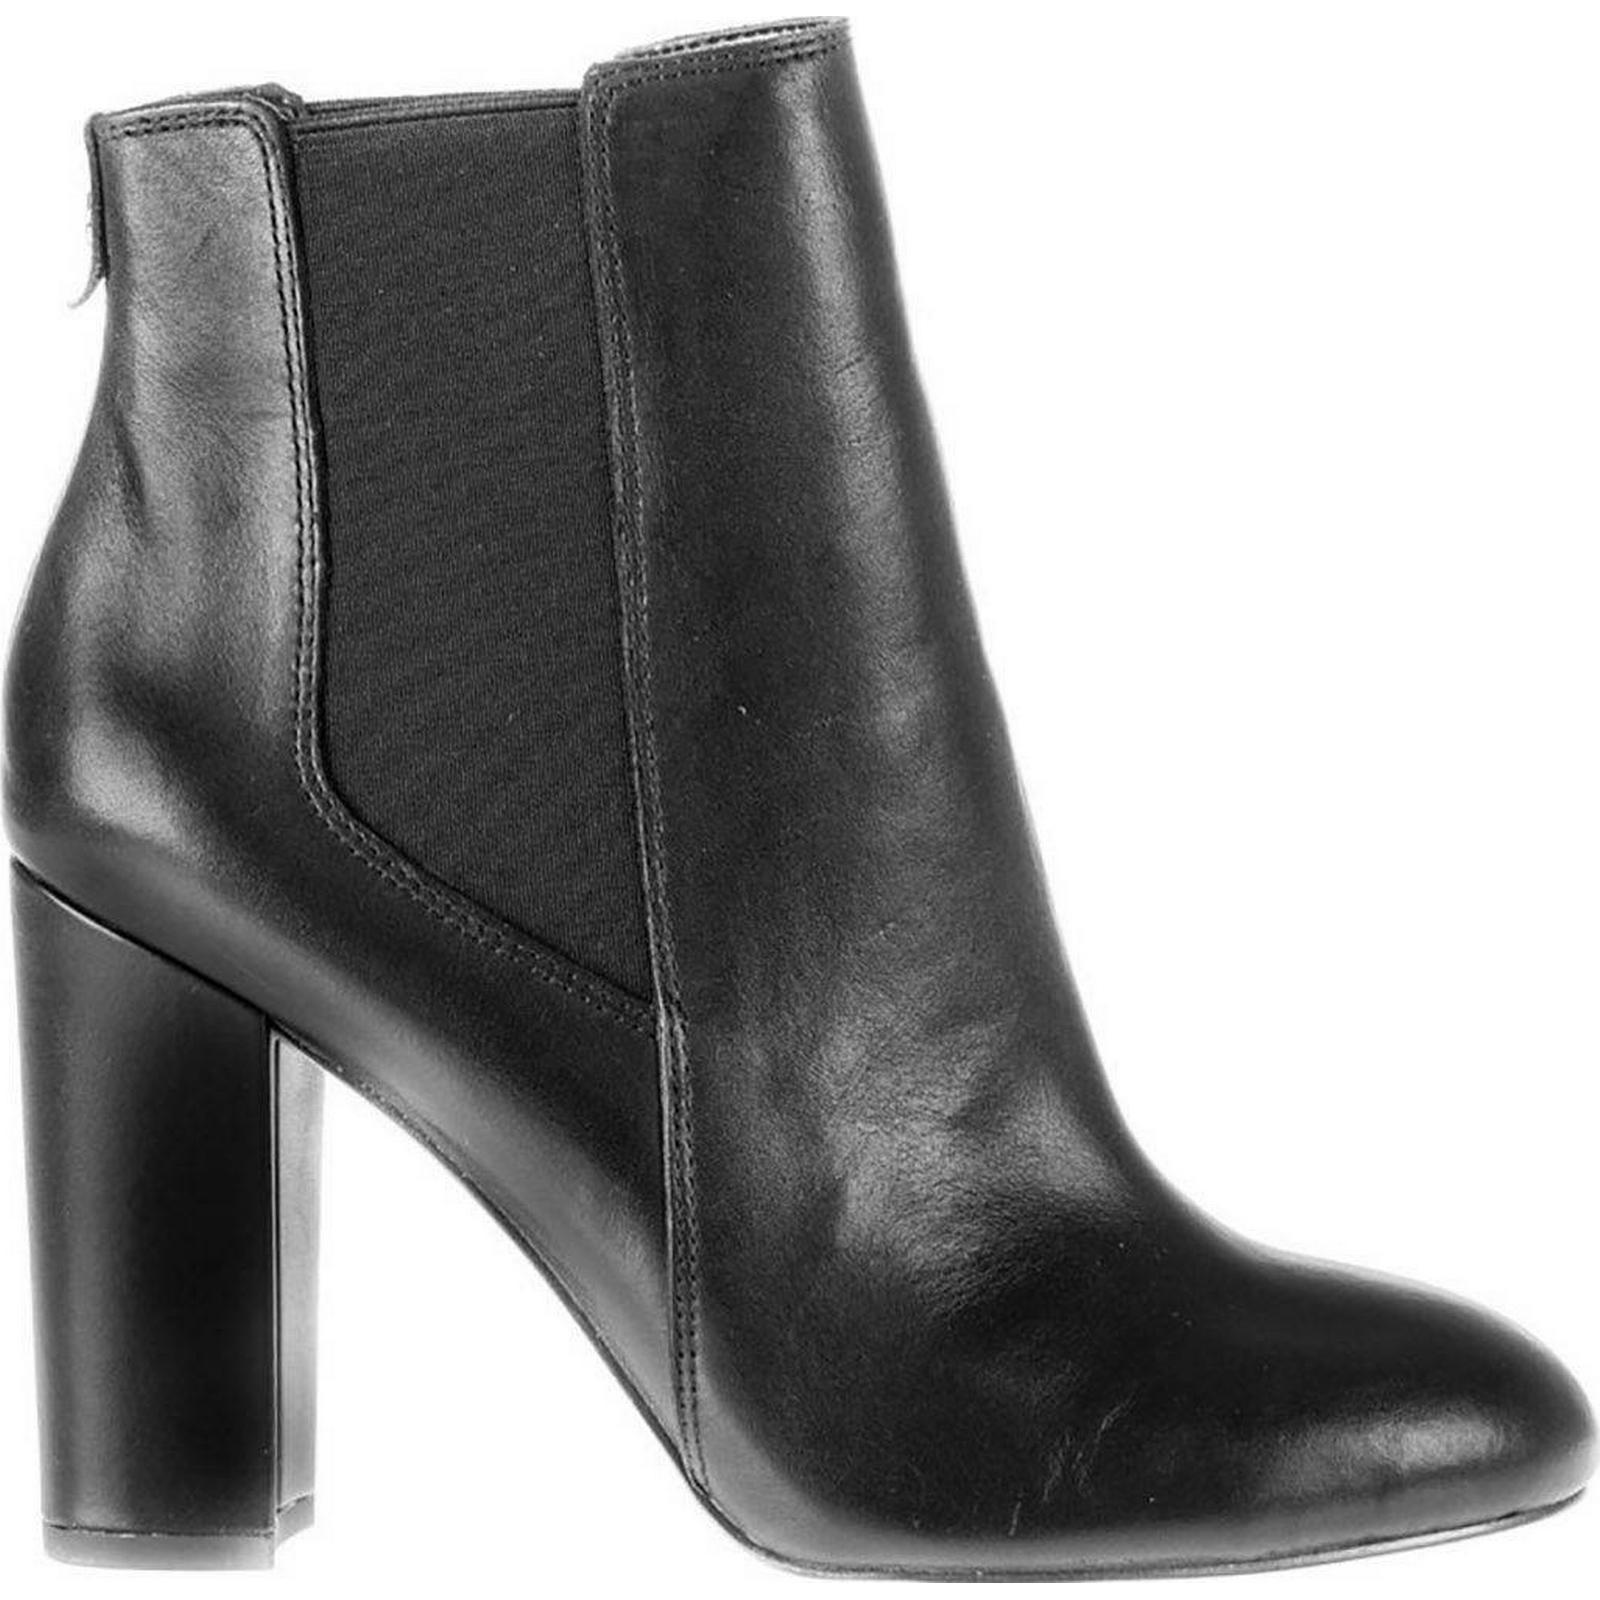 Sam Edelman Case Ankle Ankle Ankle Boots eb09c8